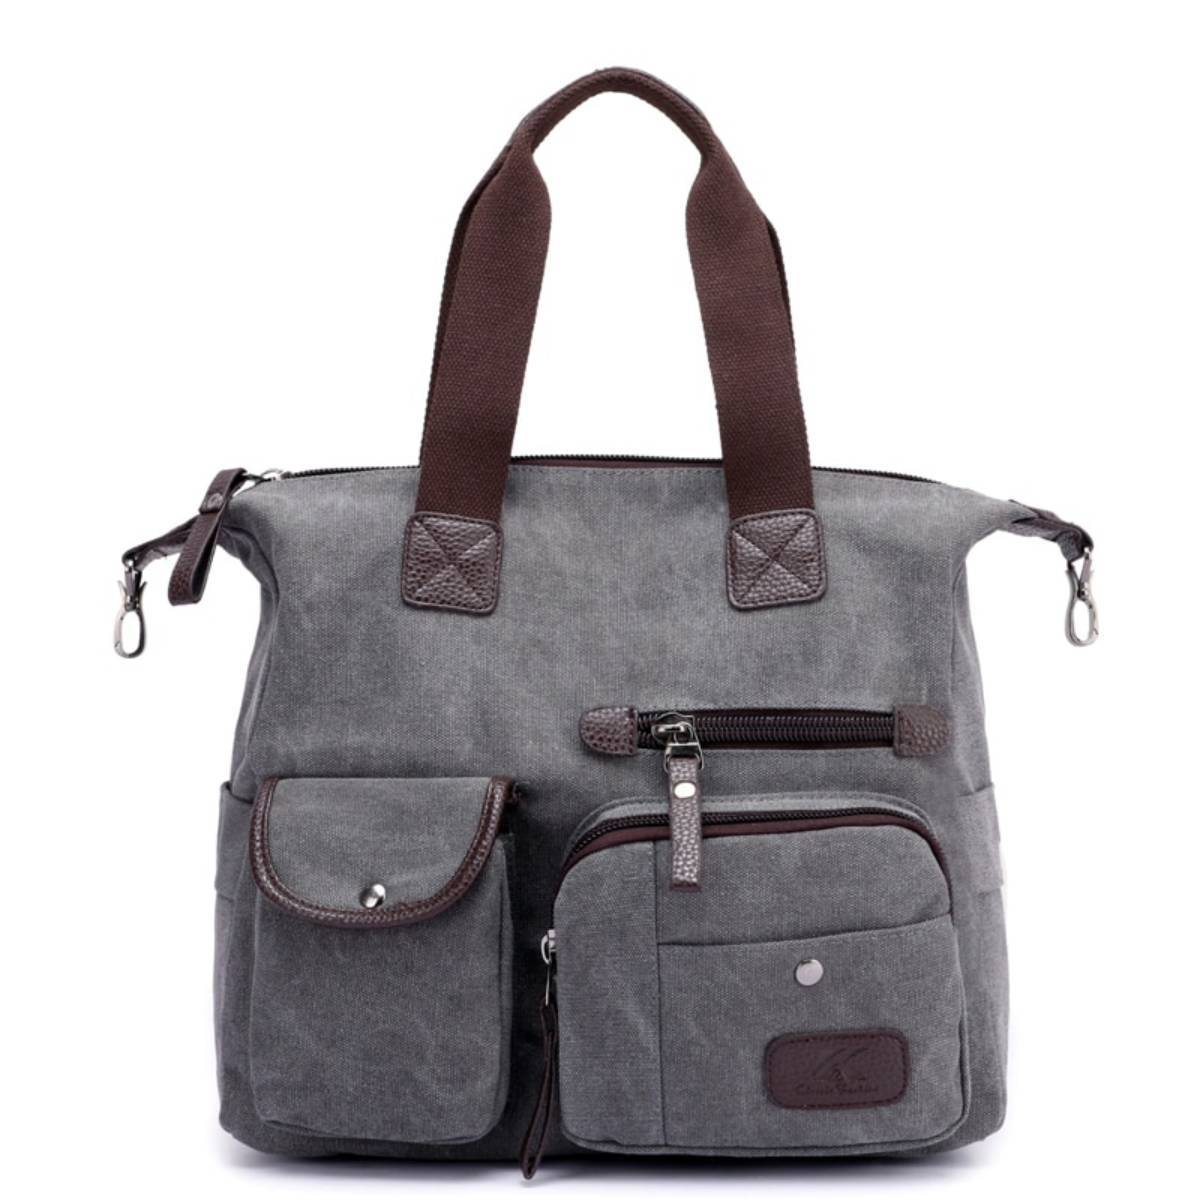 Large Multi-Pocket Women Handbags Made of High Quality Canvas